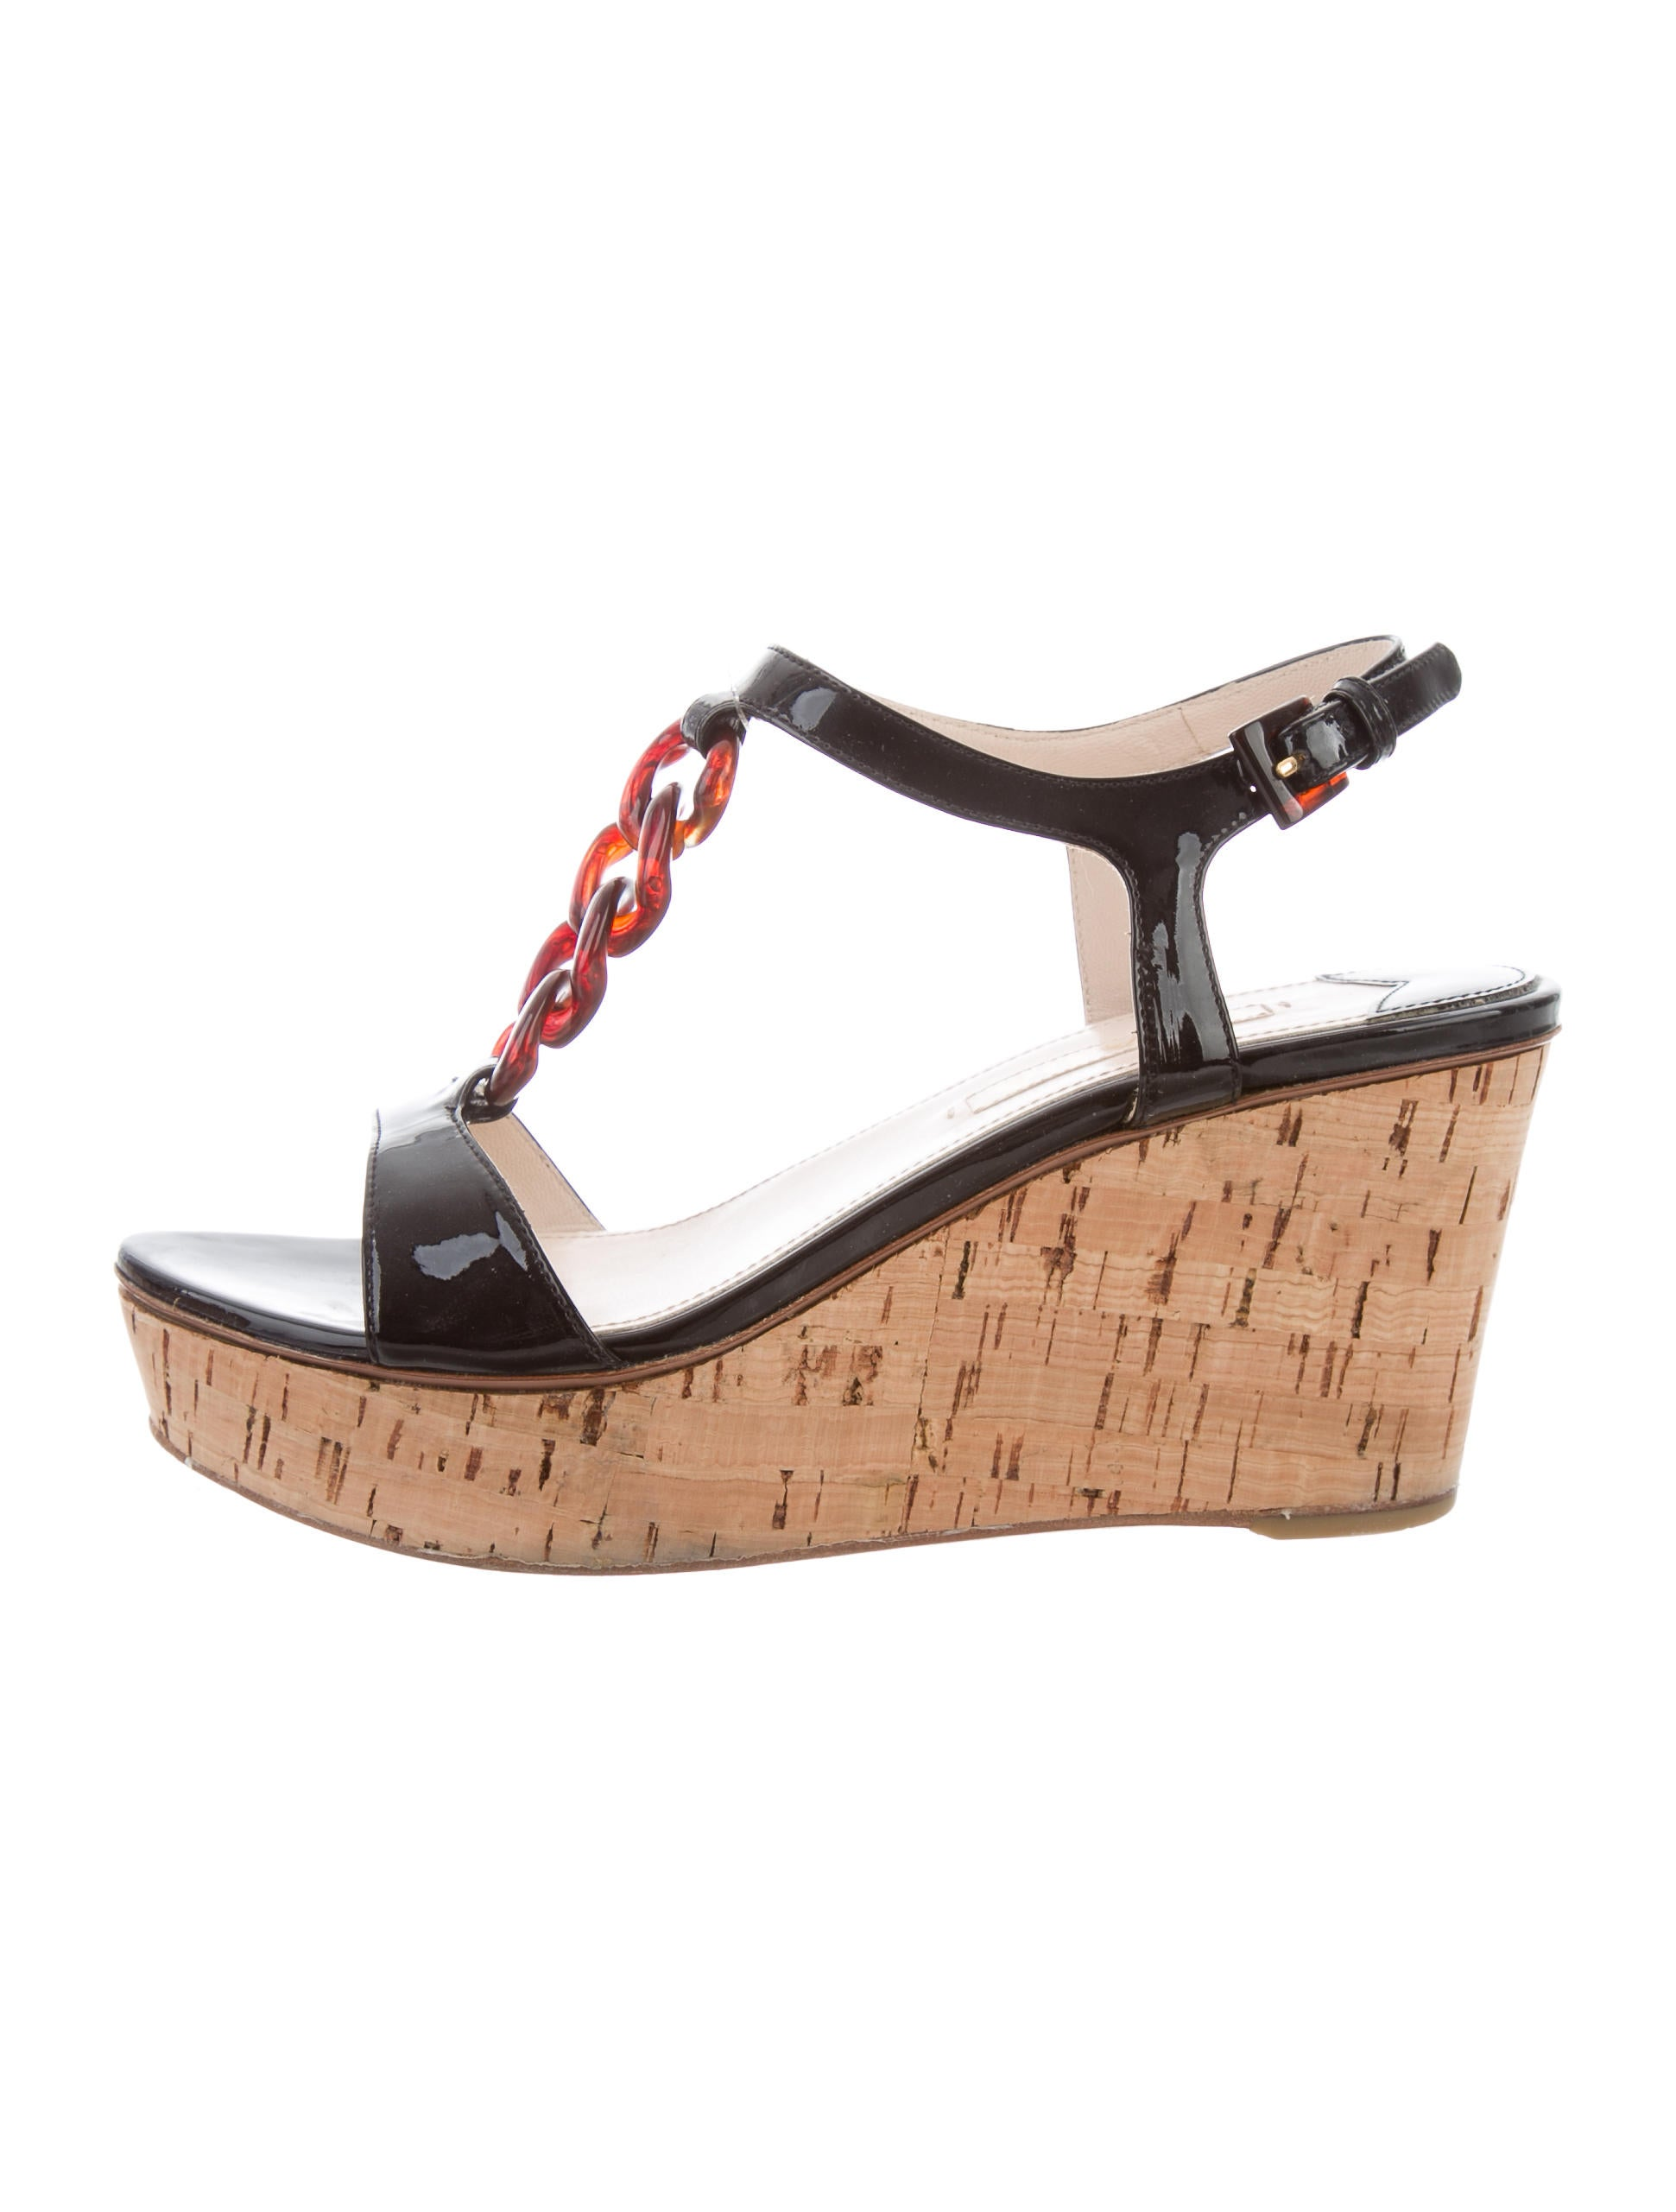 prada patent leather wedge sandals shoes pra156814